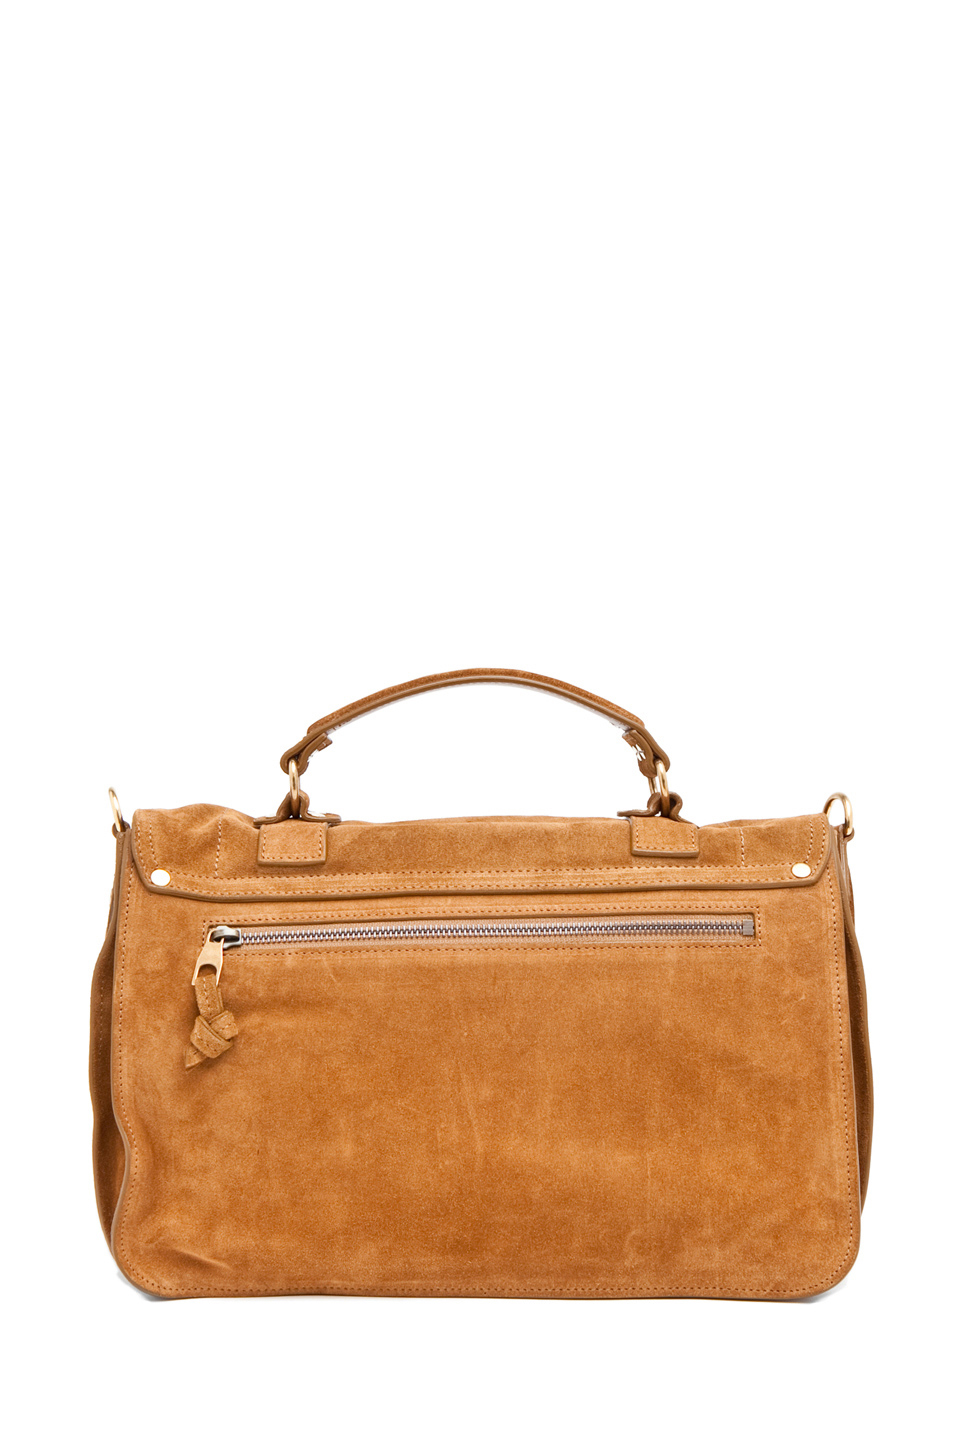 Proenza Schouler|Medium PS1 Suede Satchel in Tobacco